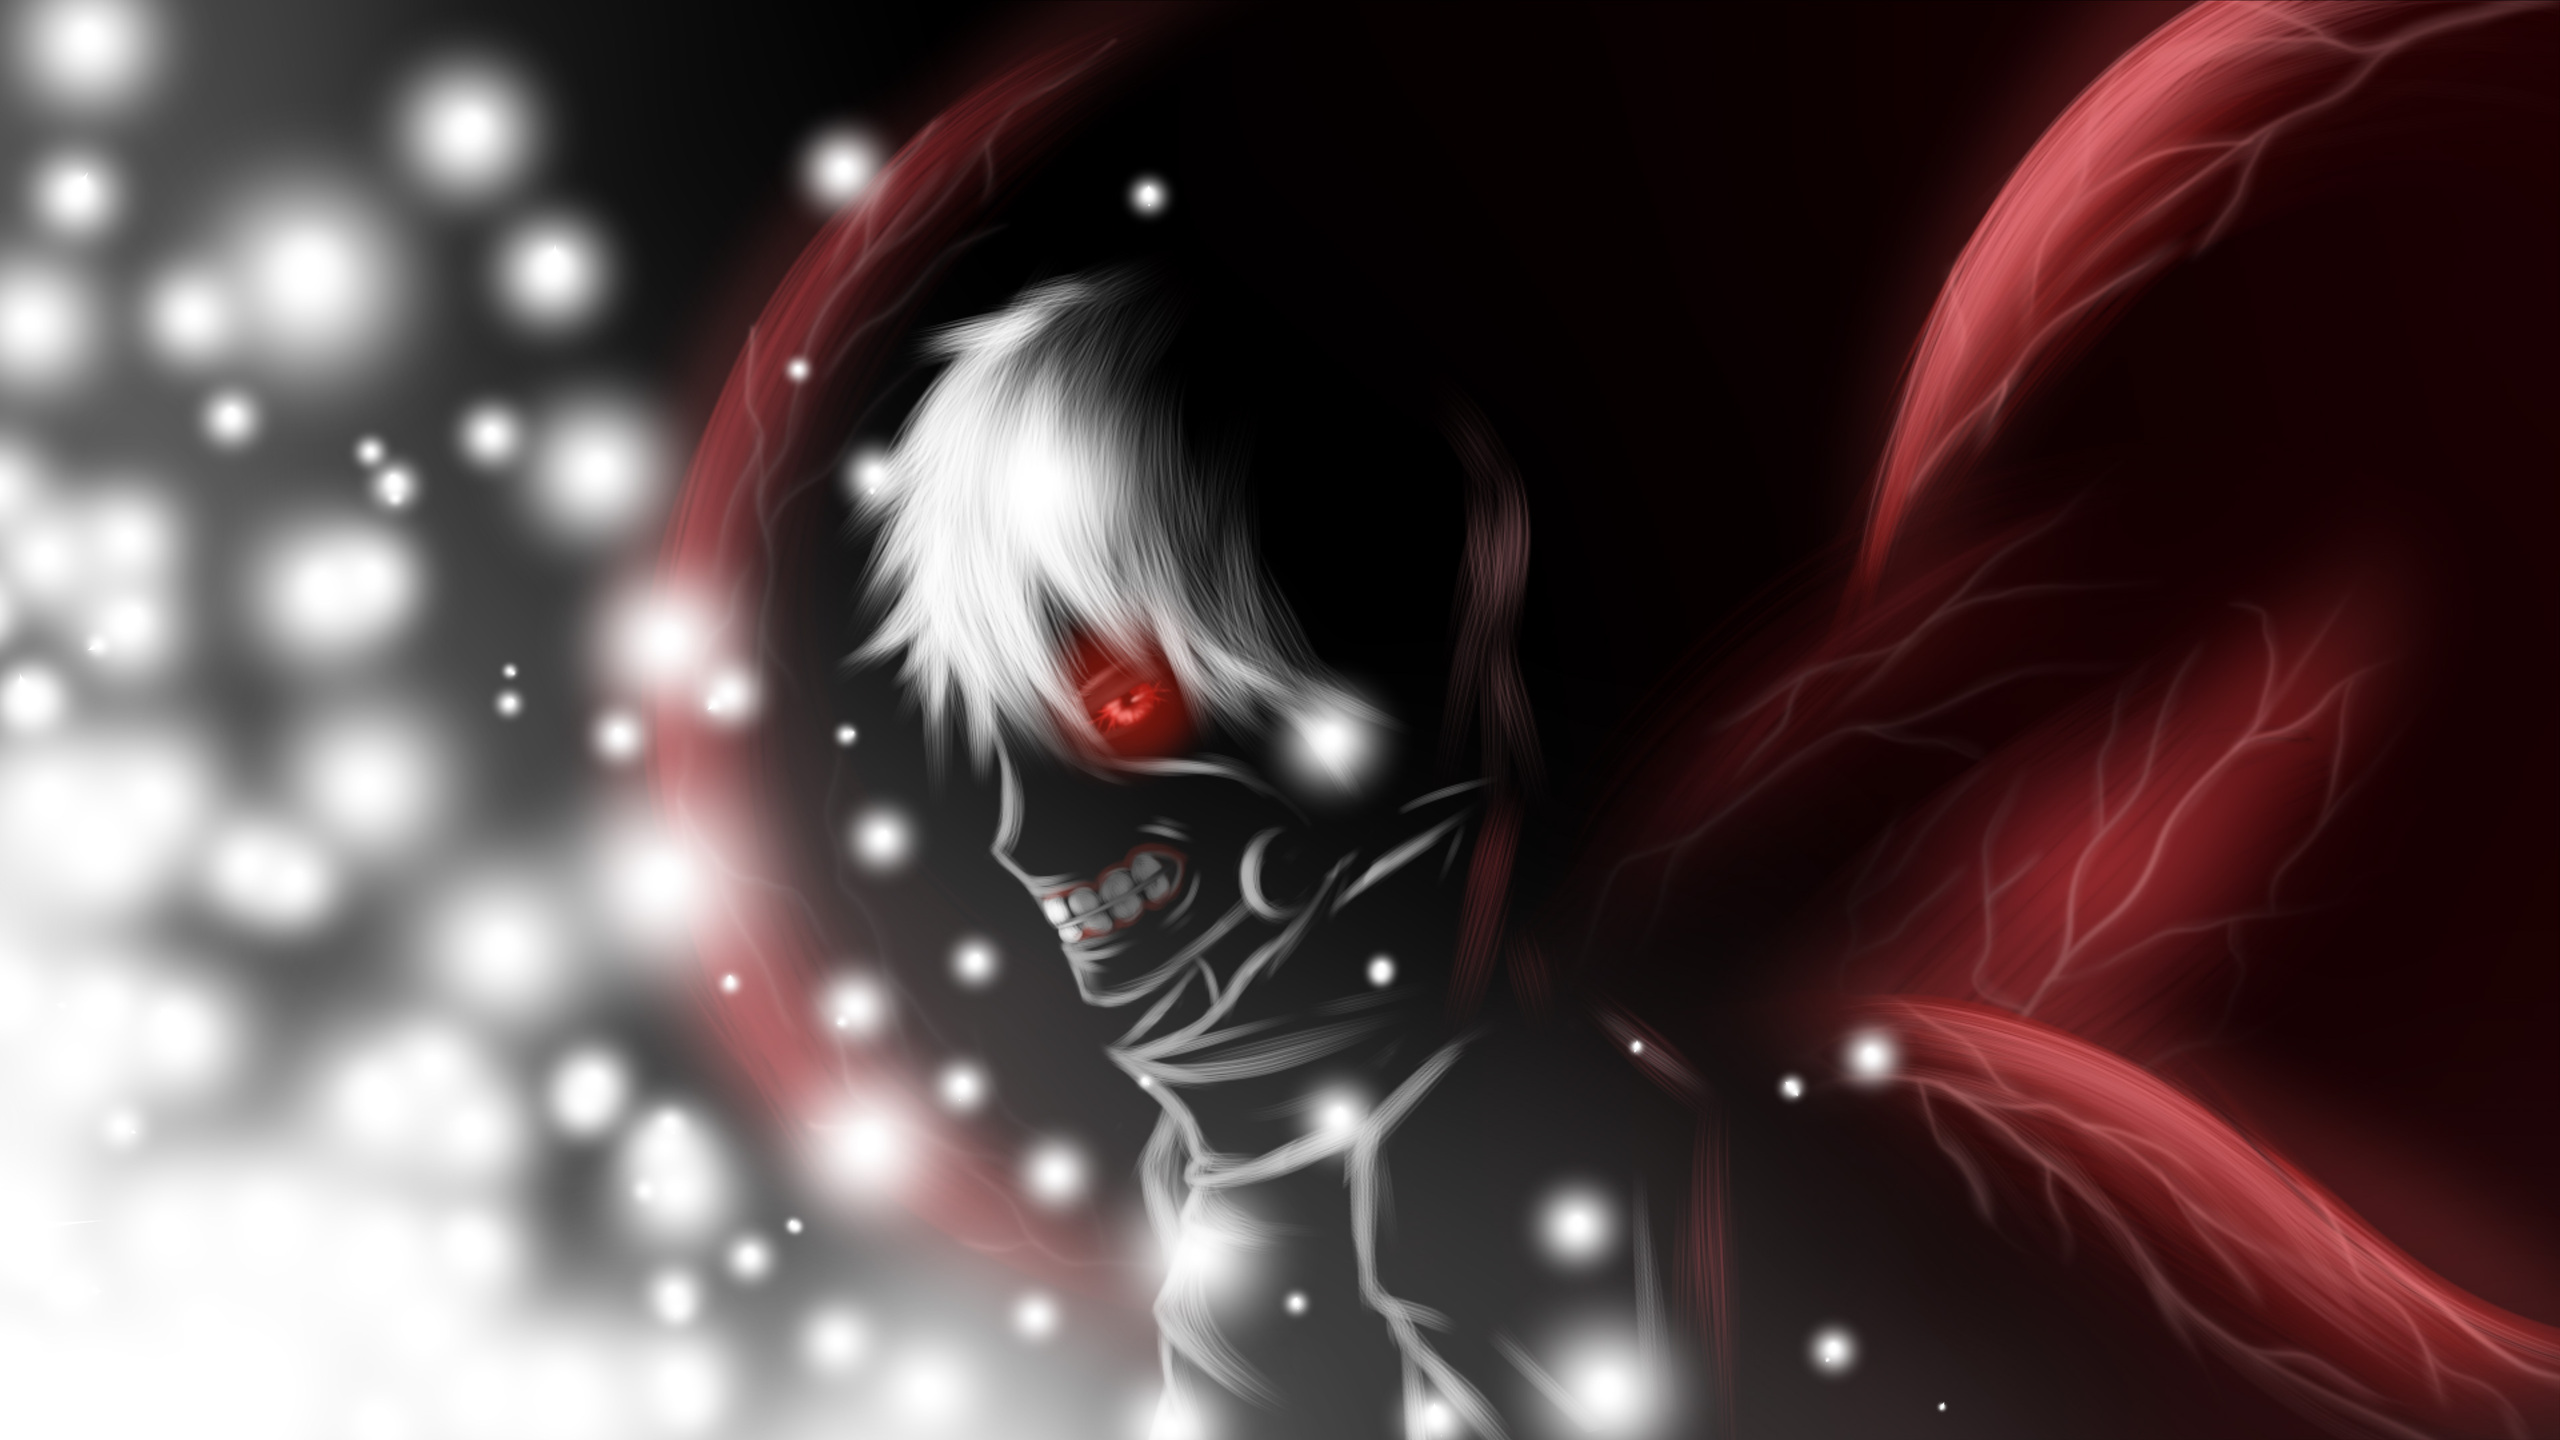 2560x1440 Tokyo Ghoul Ken Kaneki 4k 1440p Resolution Hd 4k Wallpapers Images Backgrounds Photos And Pictures